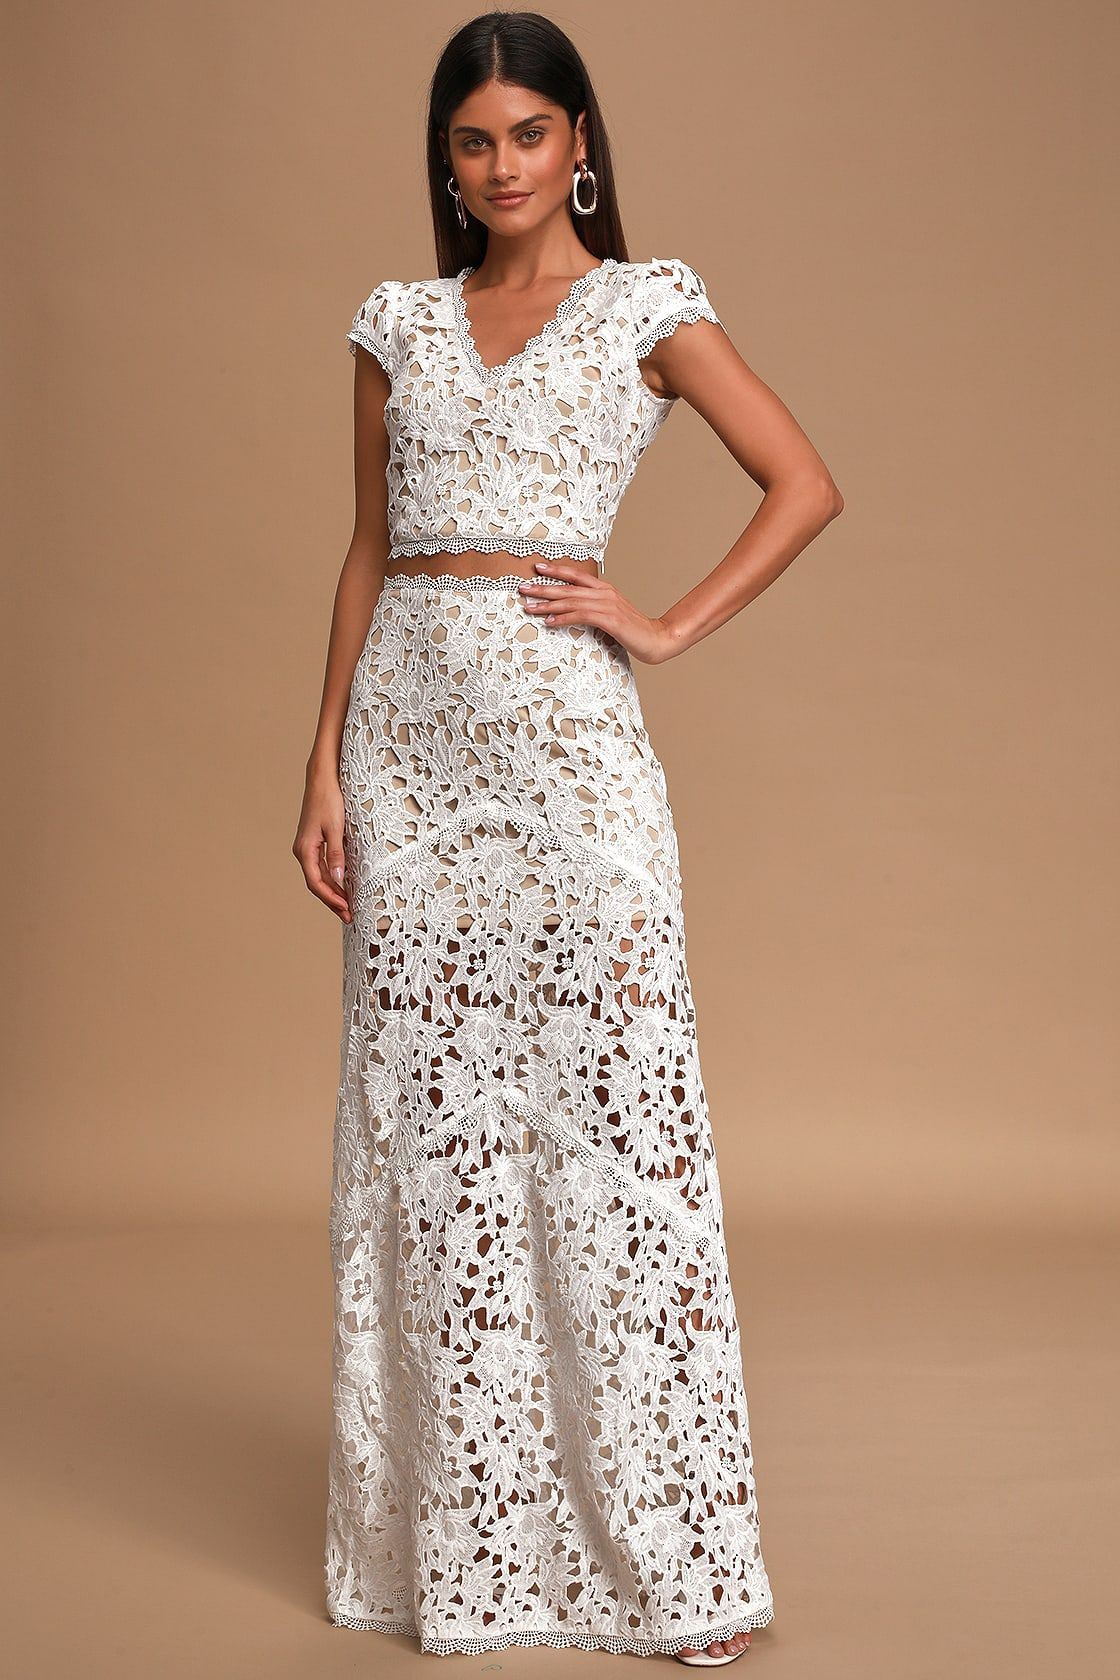 Special Moments White Crochet Lace Two Piece Maxi Dress Crochet Dress Outfits White Crochet Dress Maxi Dress [ 1680 x 1120 Pixel ]